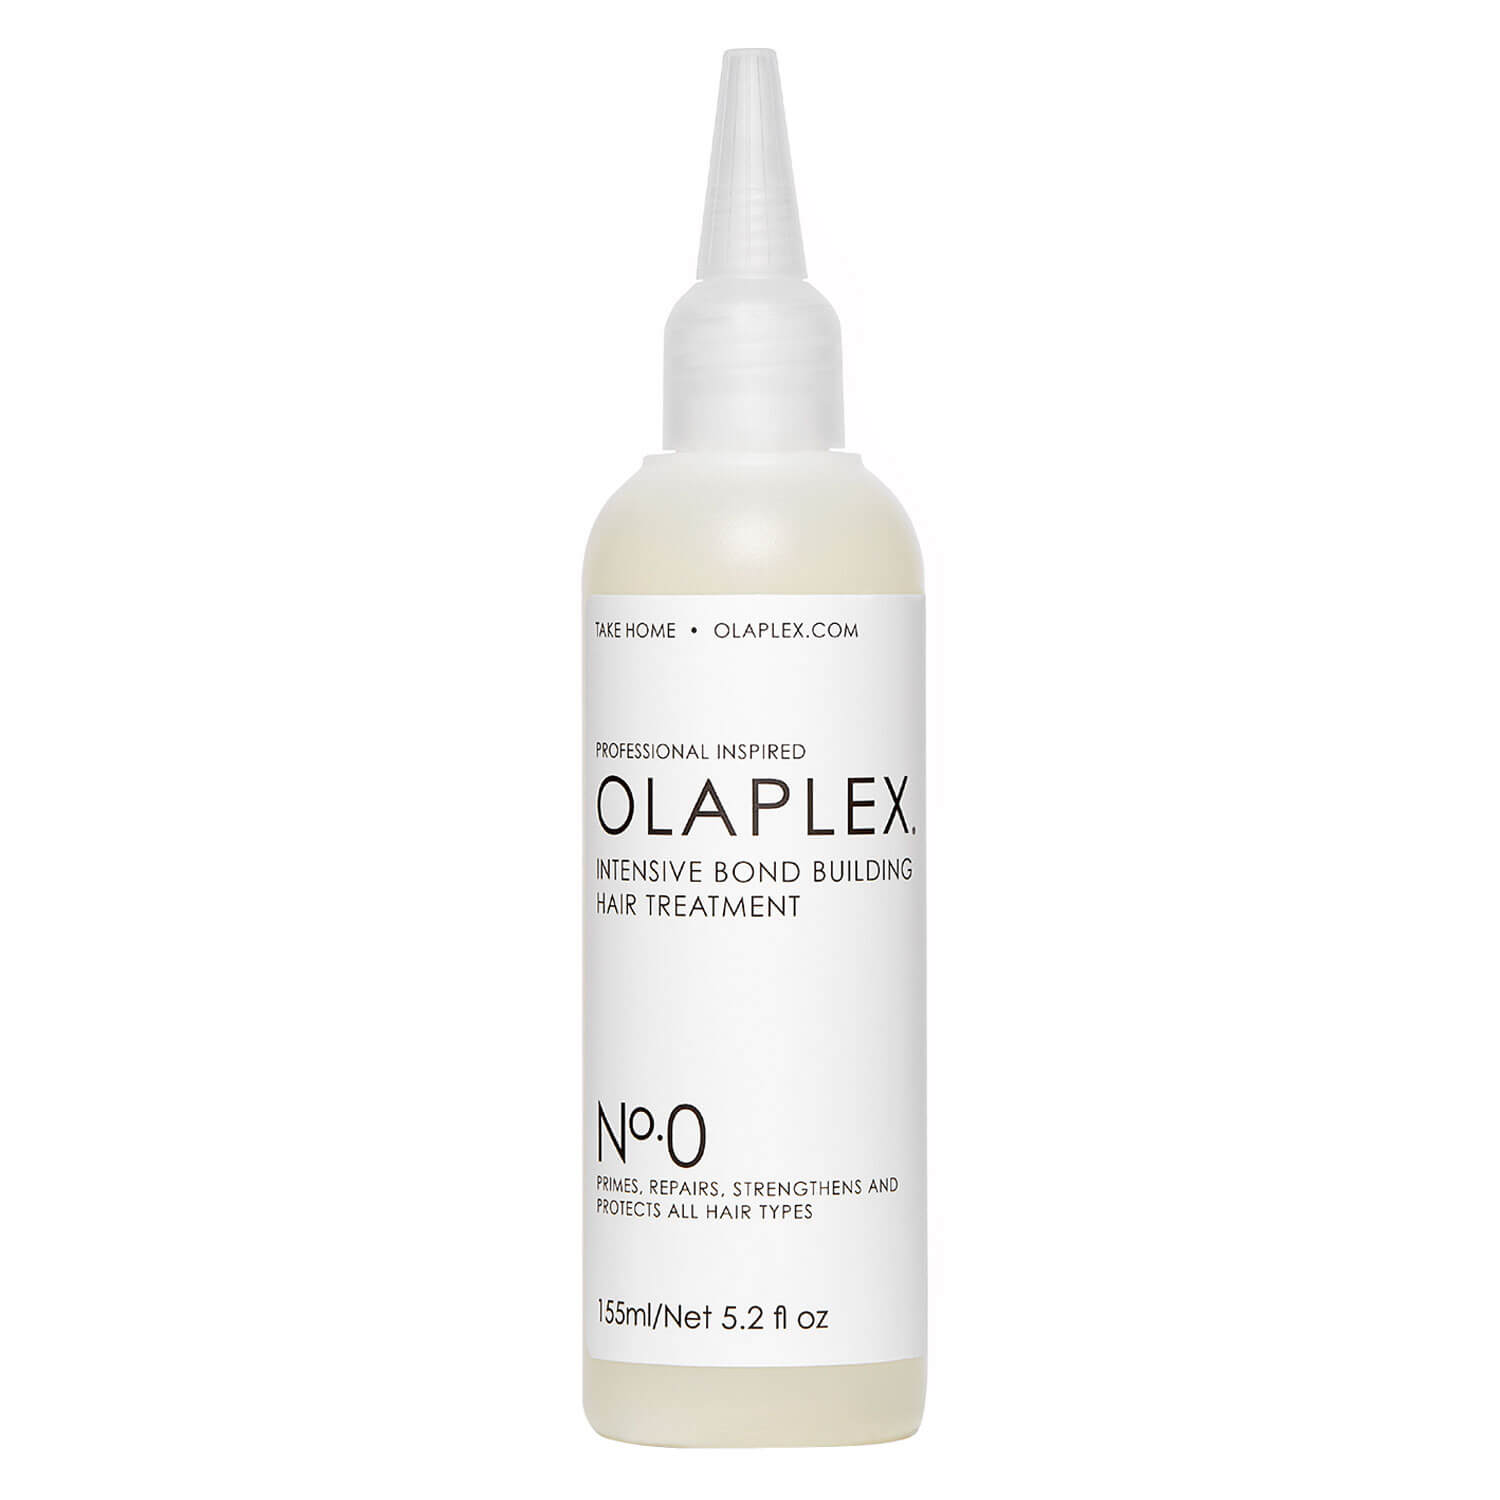 Olaplex - Intensive Bond Building Hair Treatment No. 0